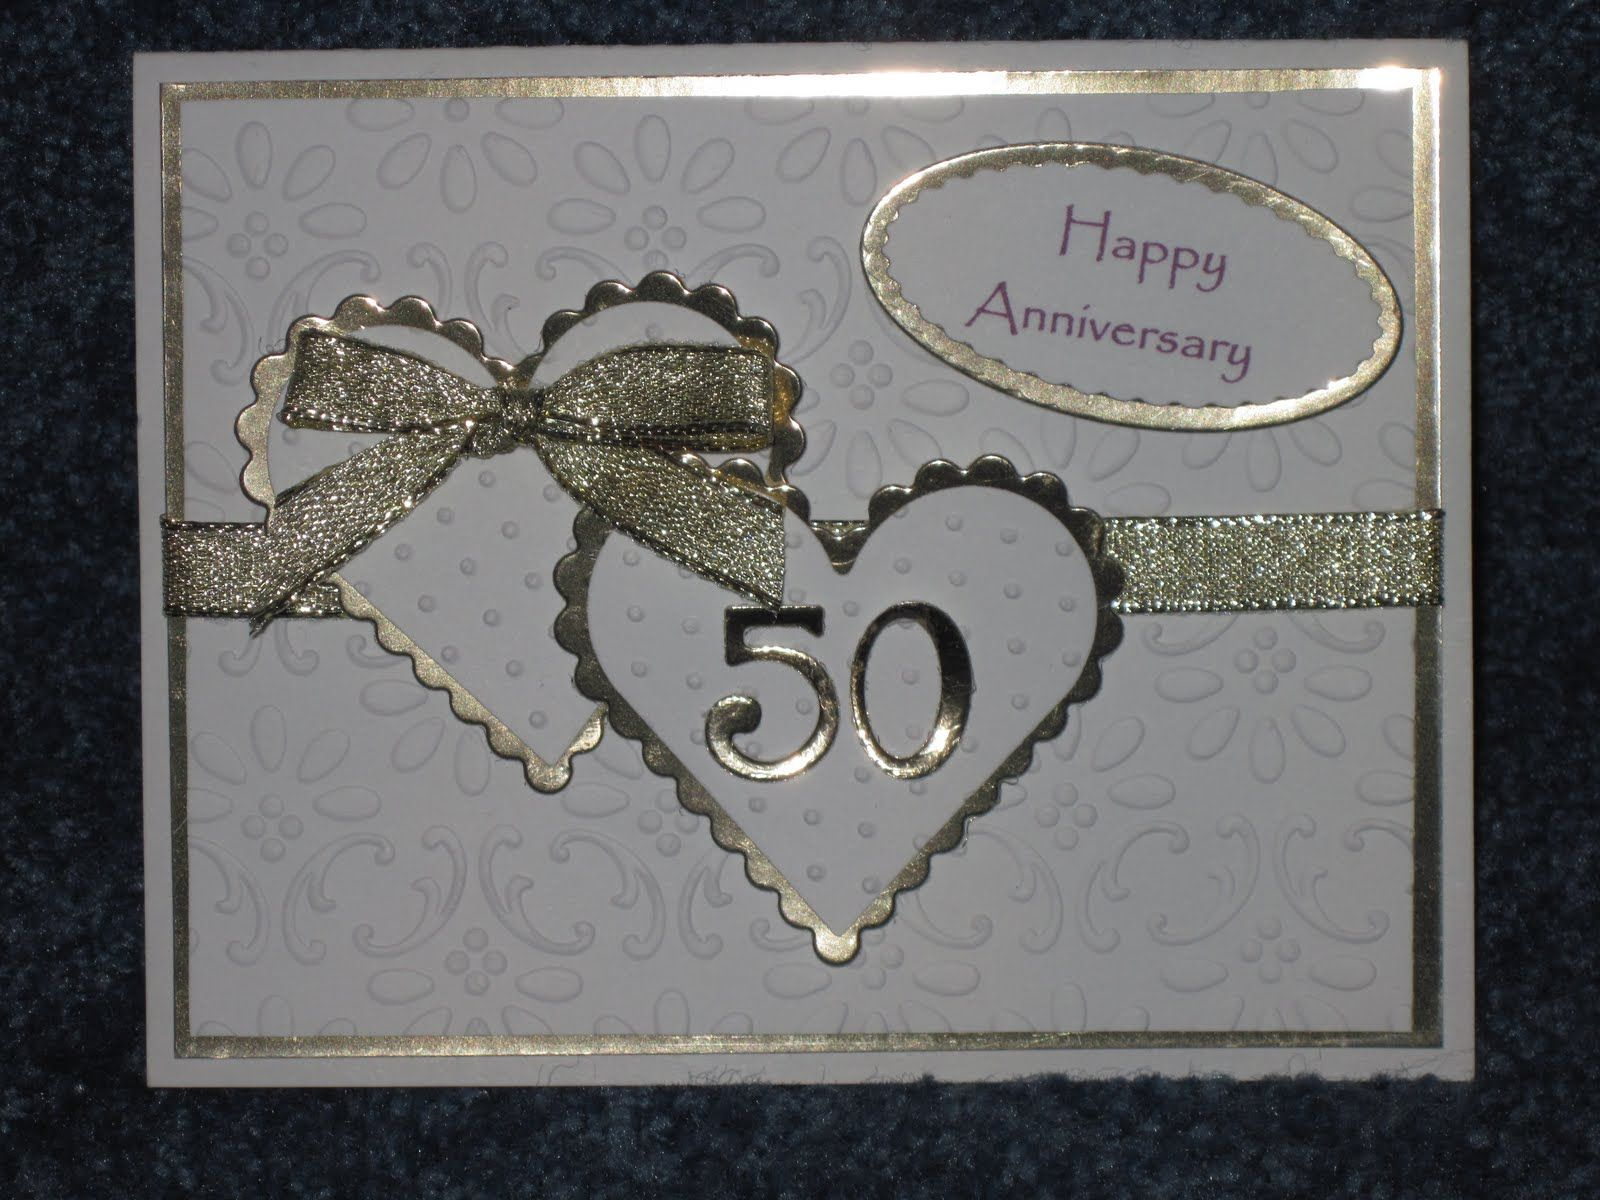 handmade 50th. Anniversary cards - Yahoo! Search Results